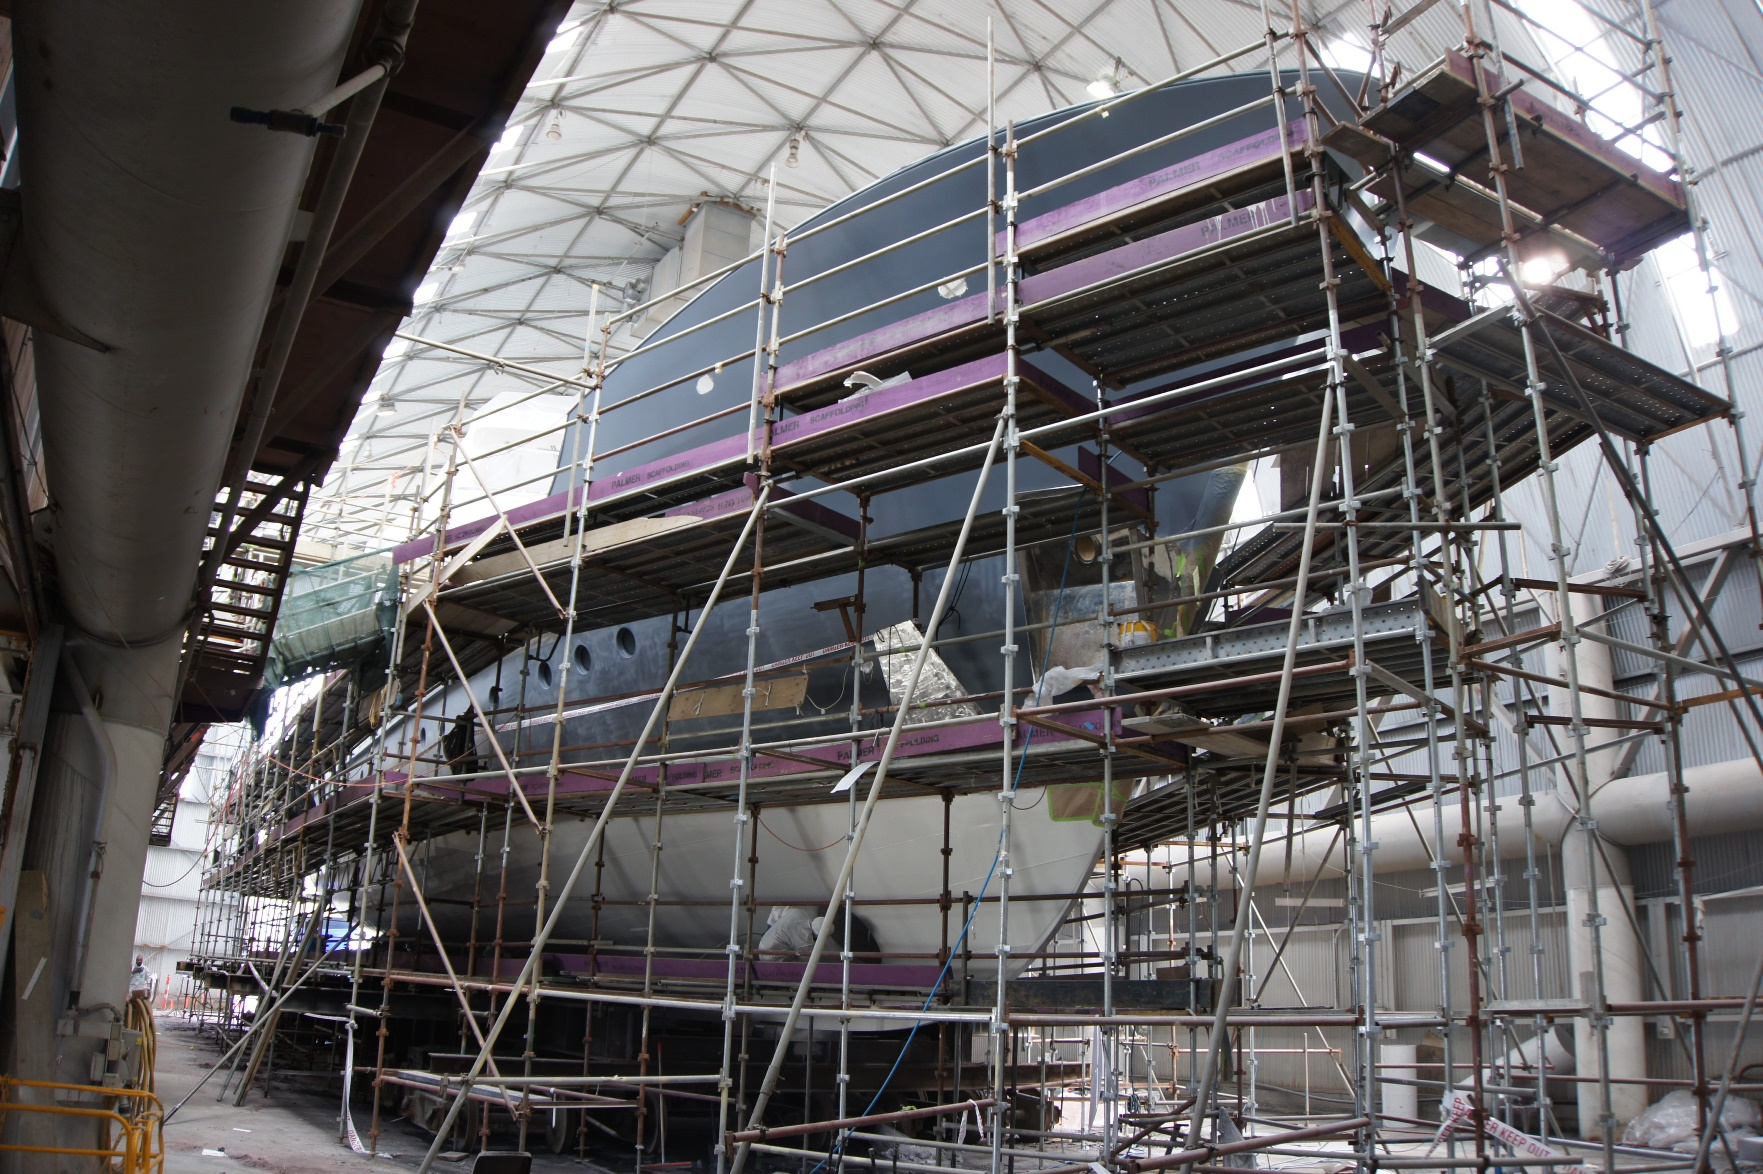 Oceania Marine Refit Services Launches with Major Refit for 37M Motor Yacht Dardanella - Teaser Image